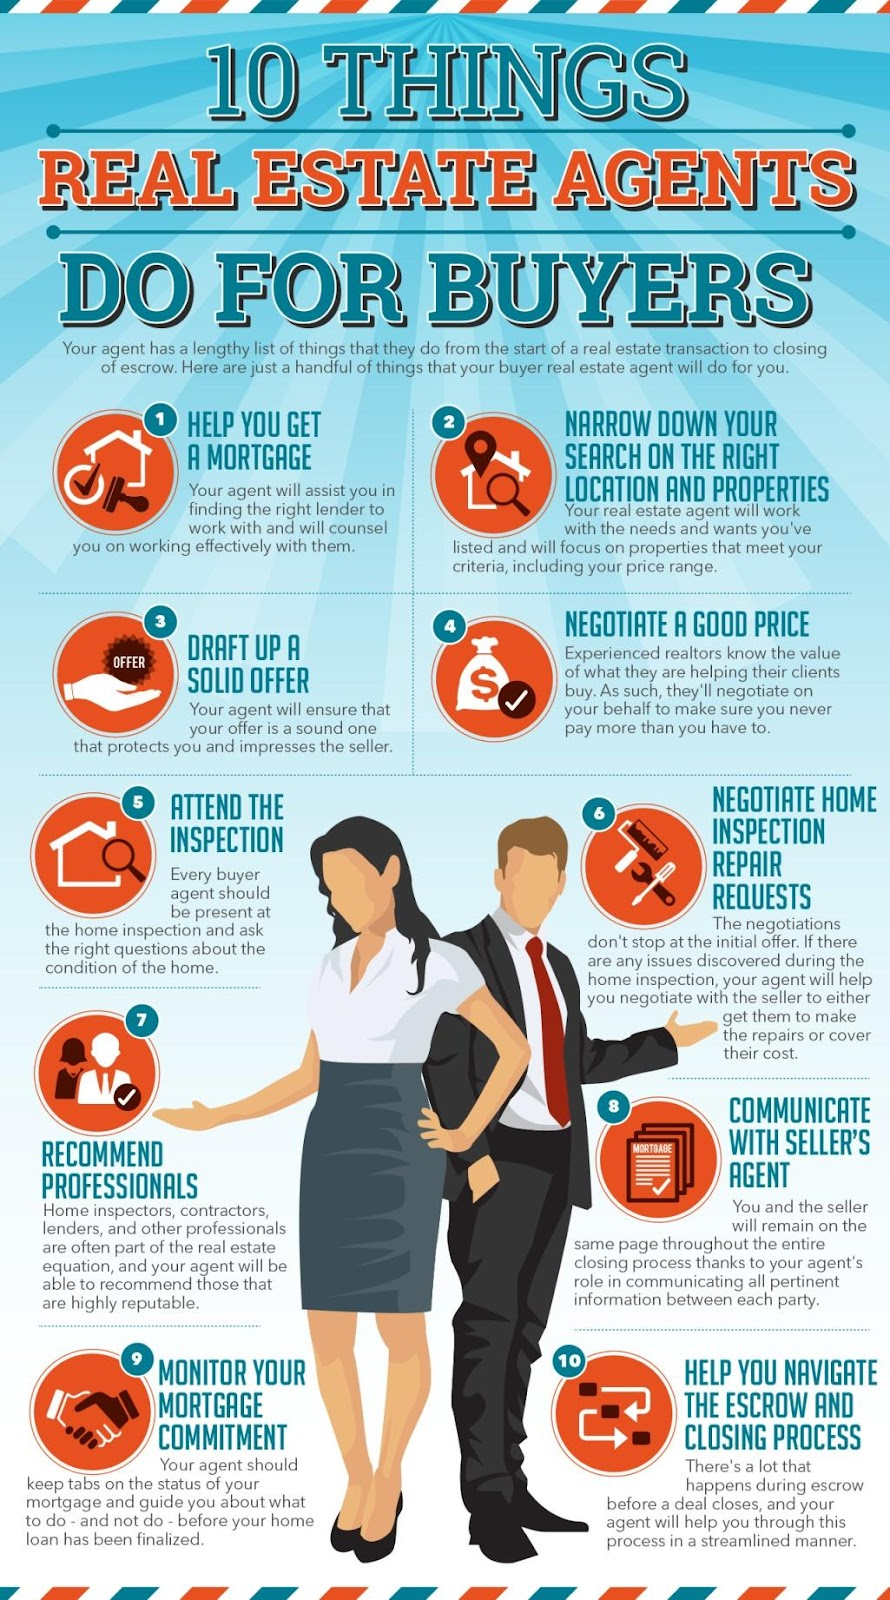 infographic-10-things-real-estate-agents-do-for-buyers-content.jpg